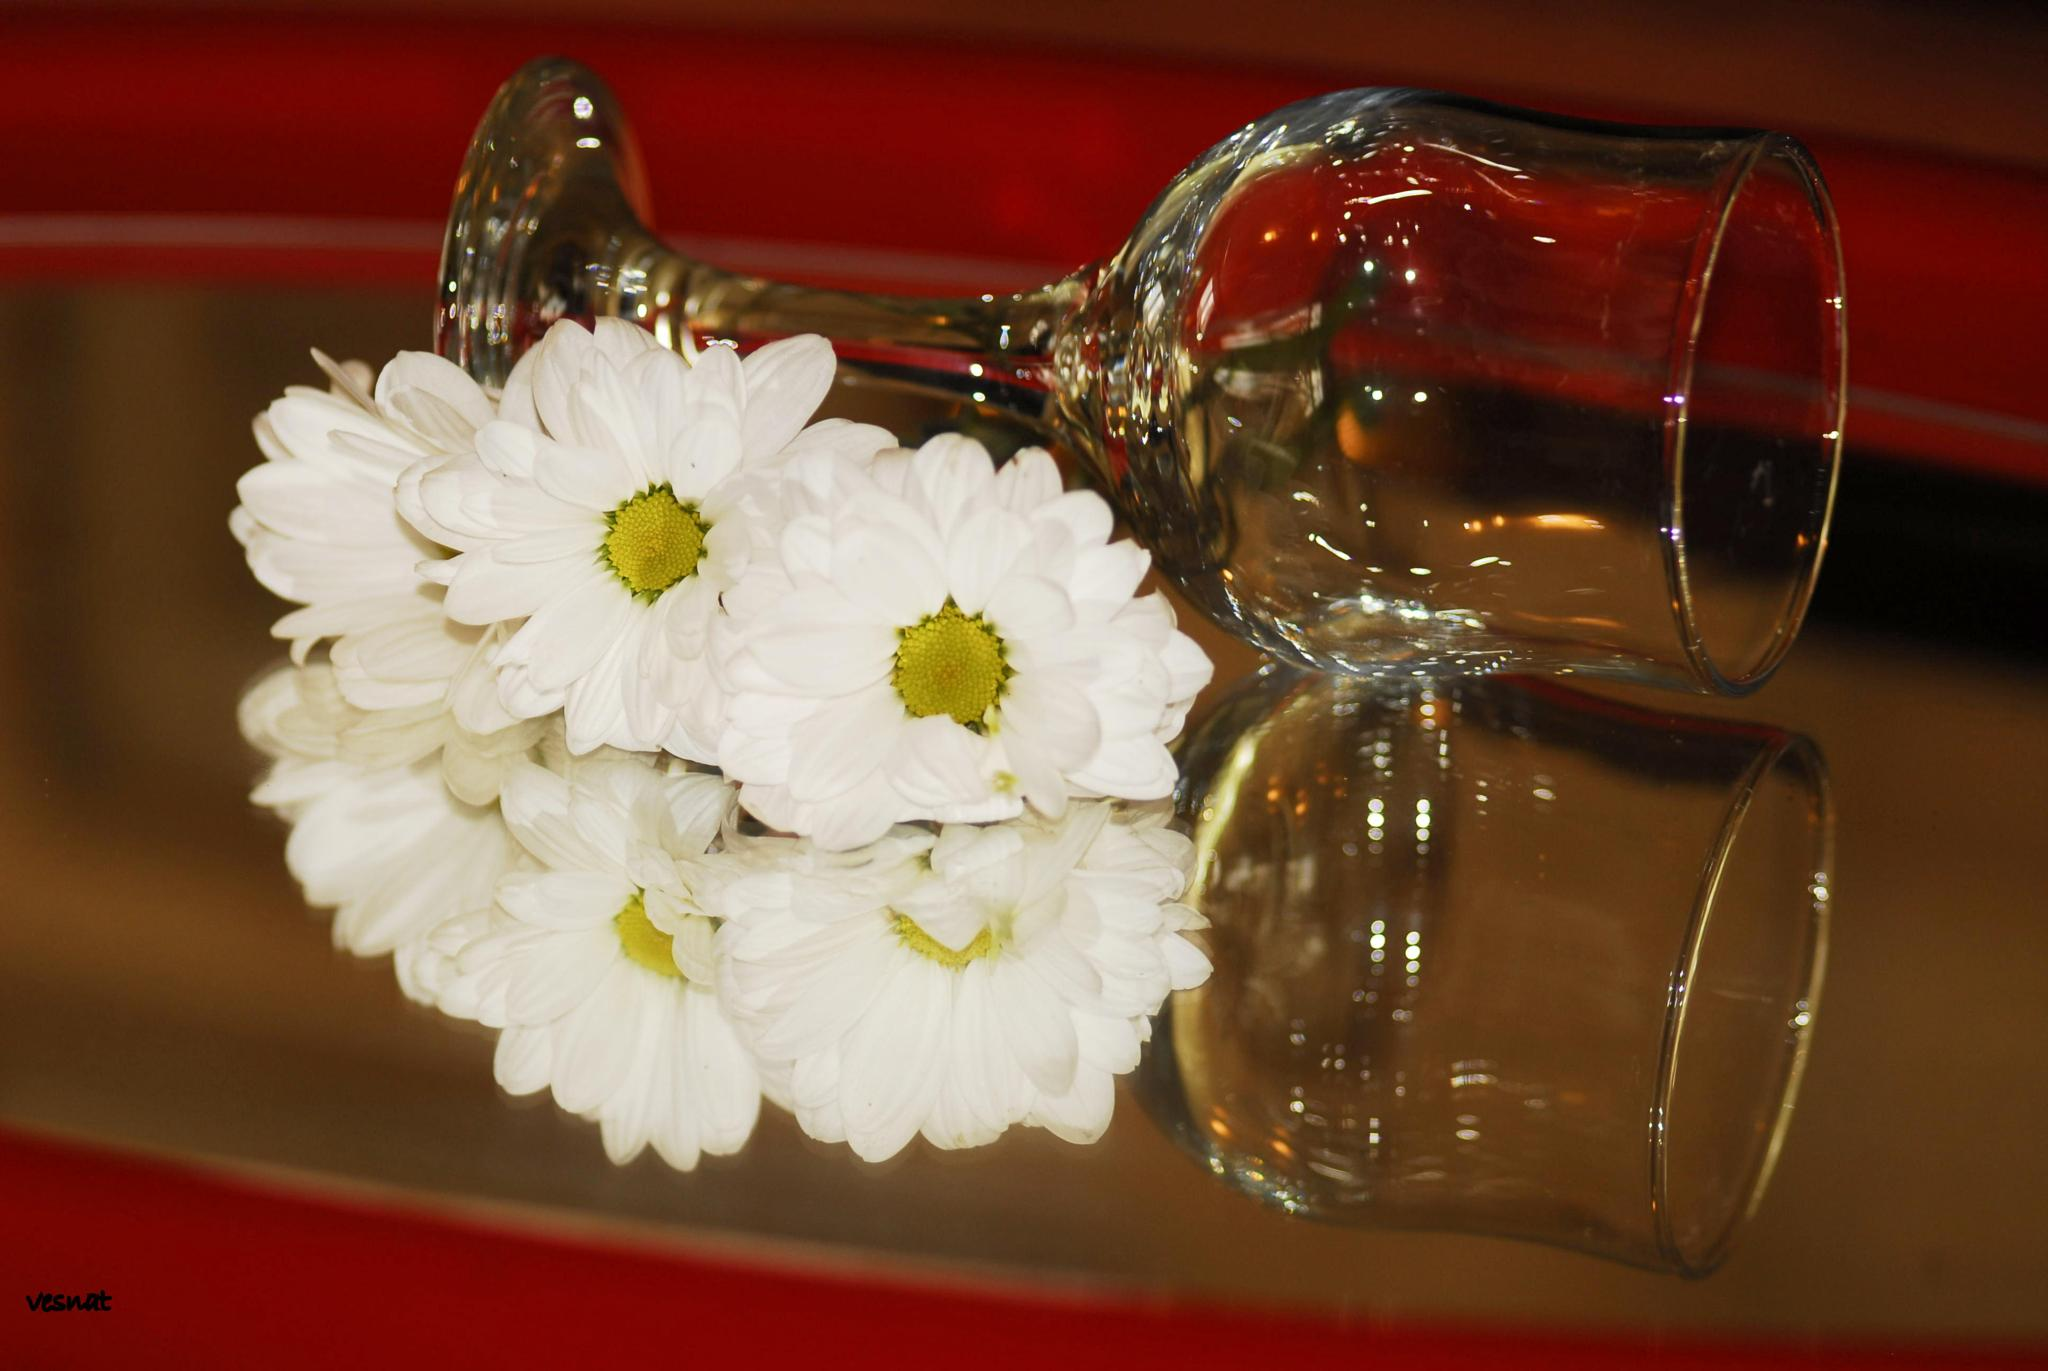 white flowers and glass in the mirror by vesna.tafra